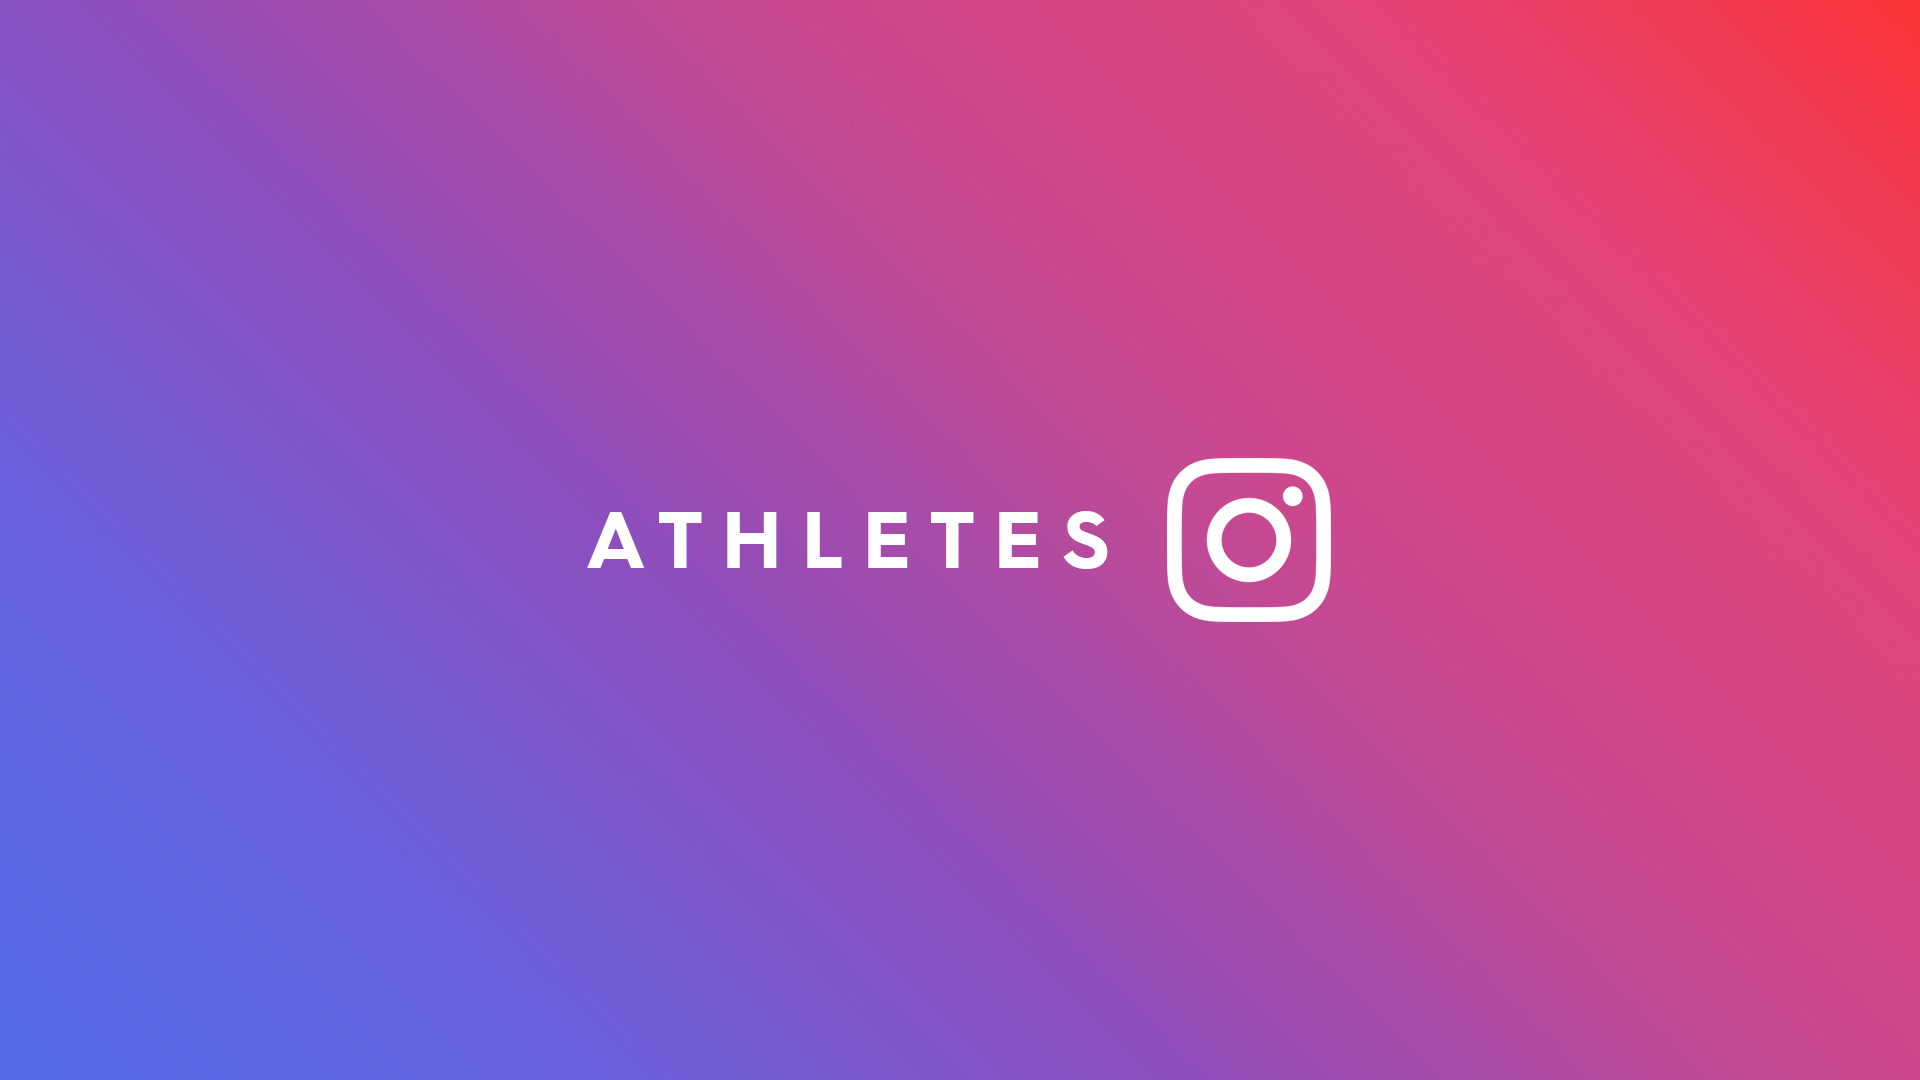 INSTAGRAM-ATHLETES.jpg